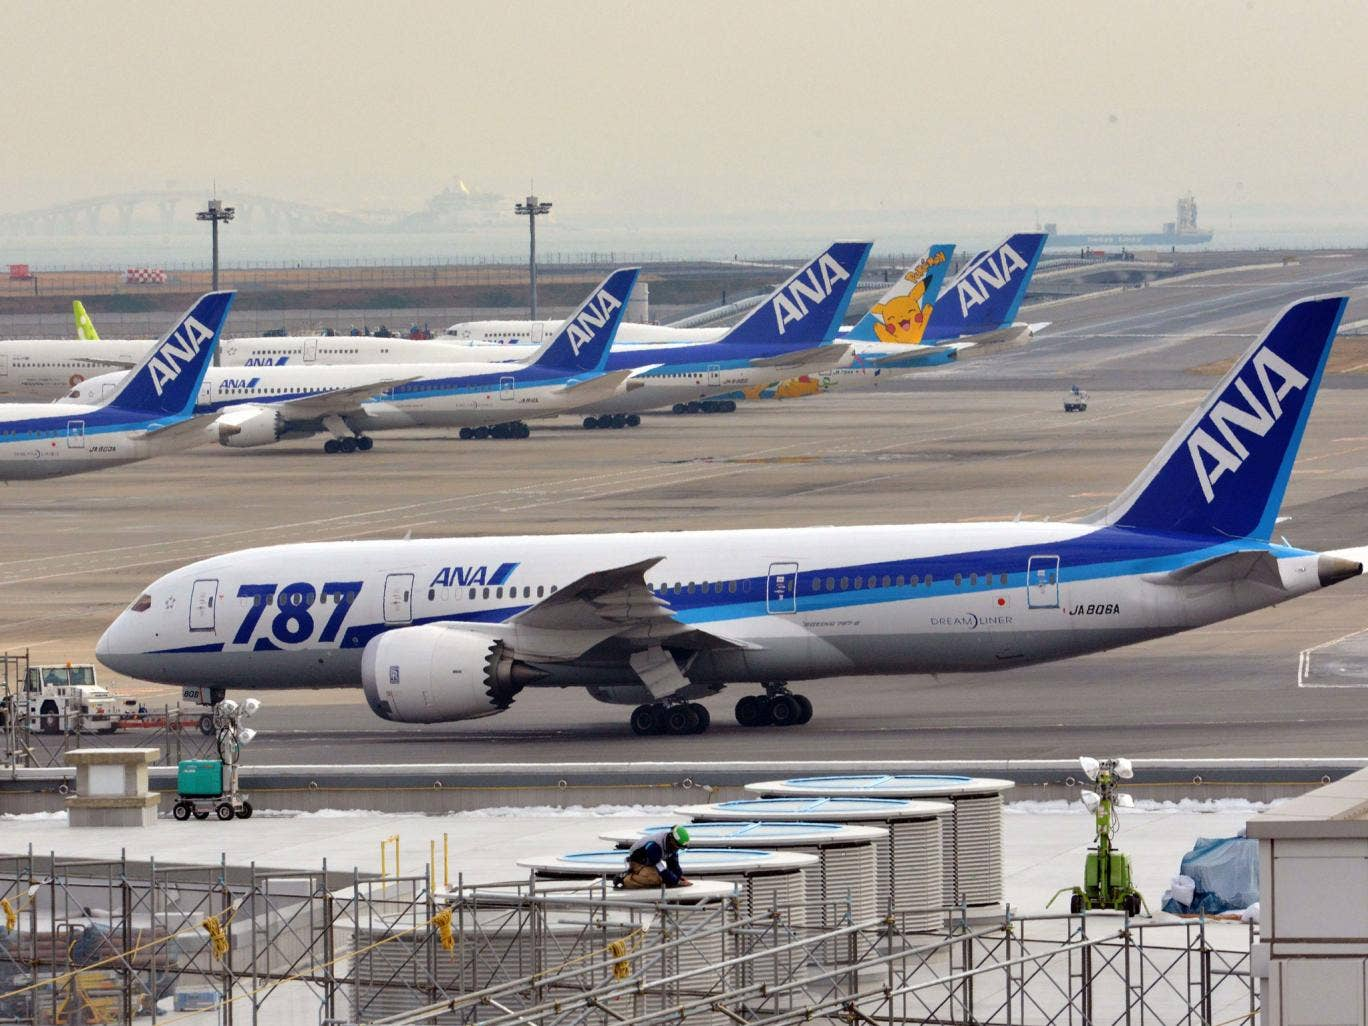 Japan's major airlines grounded their Boeing 787 planes for safety checks today